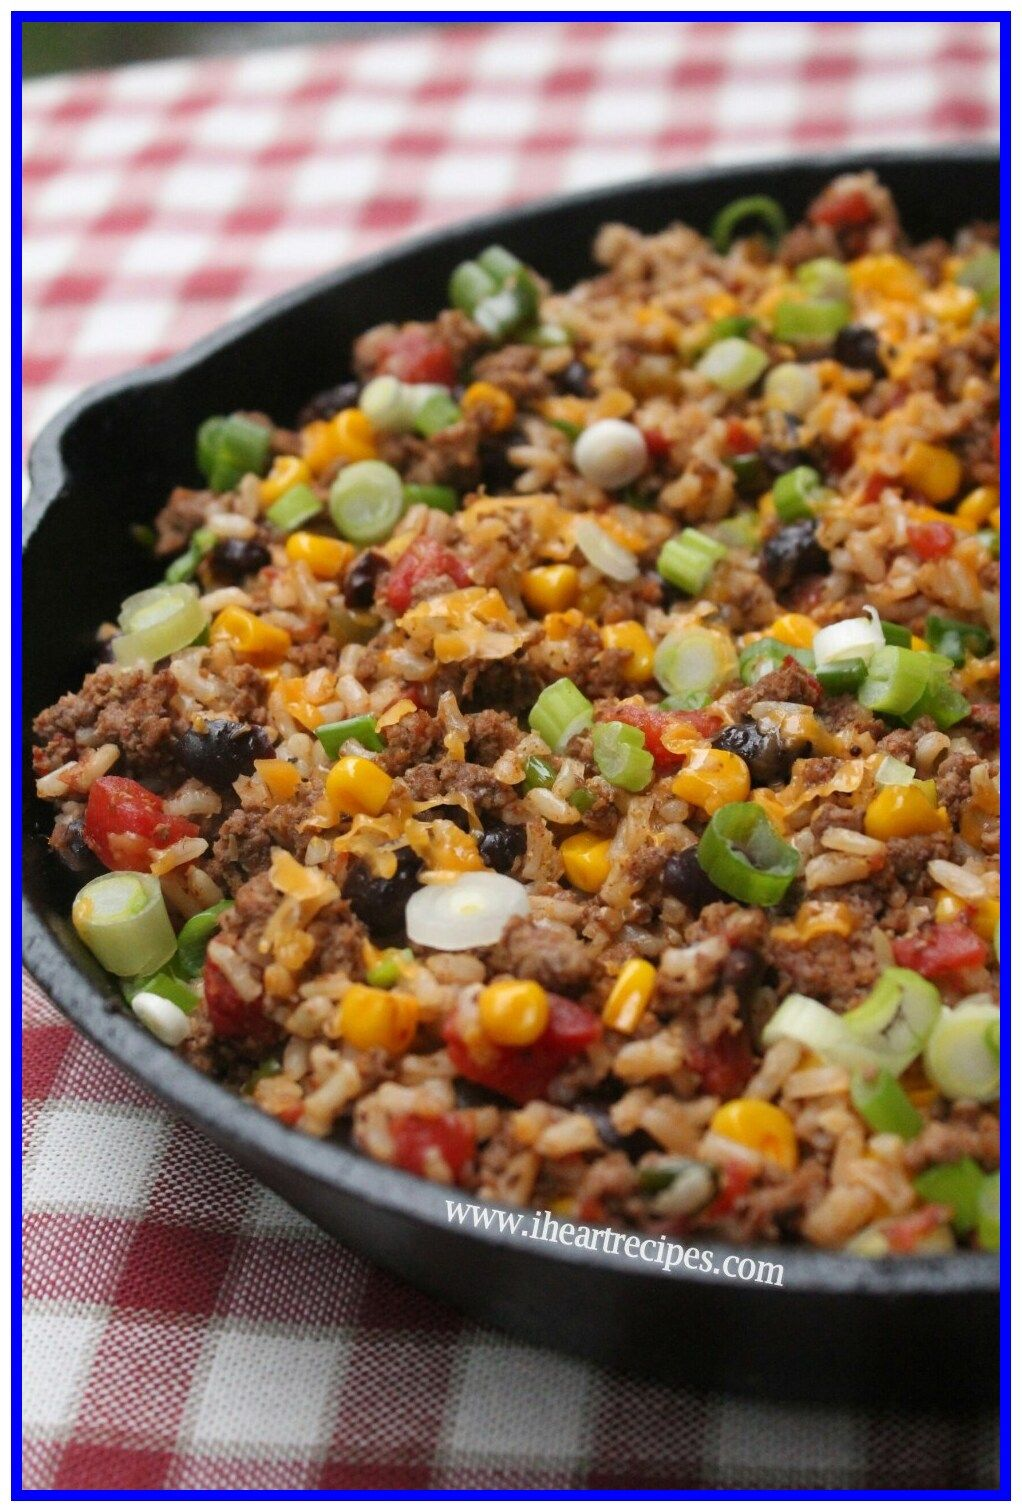 59 Reference Of Simple Ground Beef Recipes Reddit Beef Recipes For Dinner Ground Beef Recipes For Dinner Beef Skillet Recipe